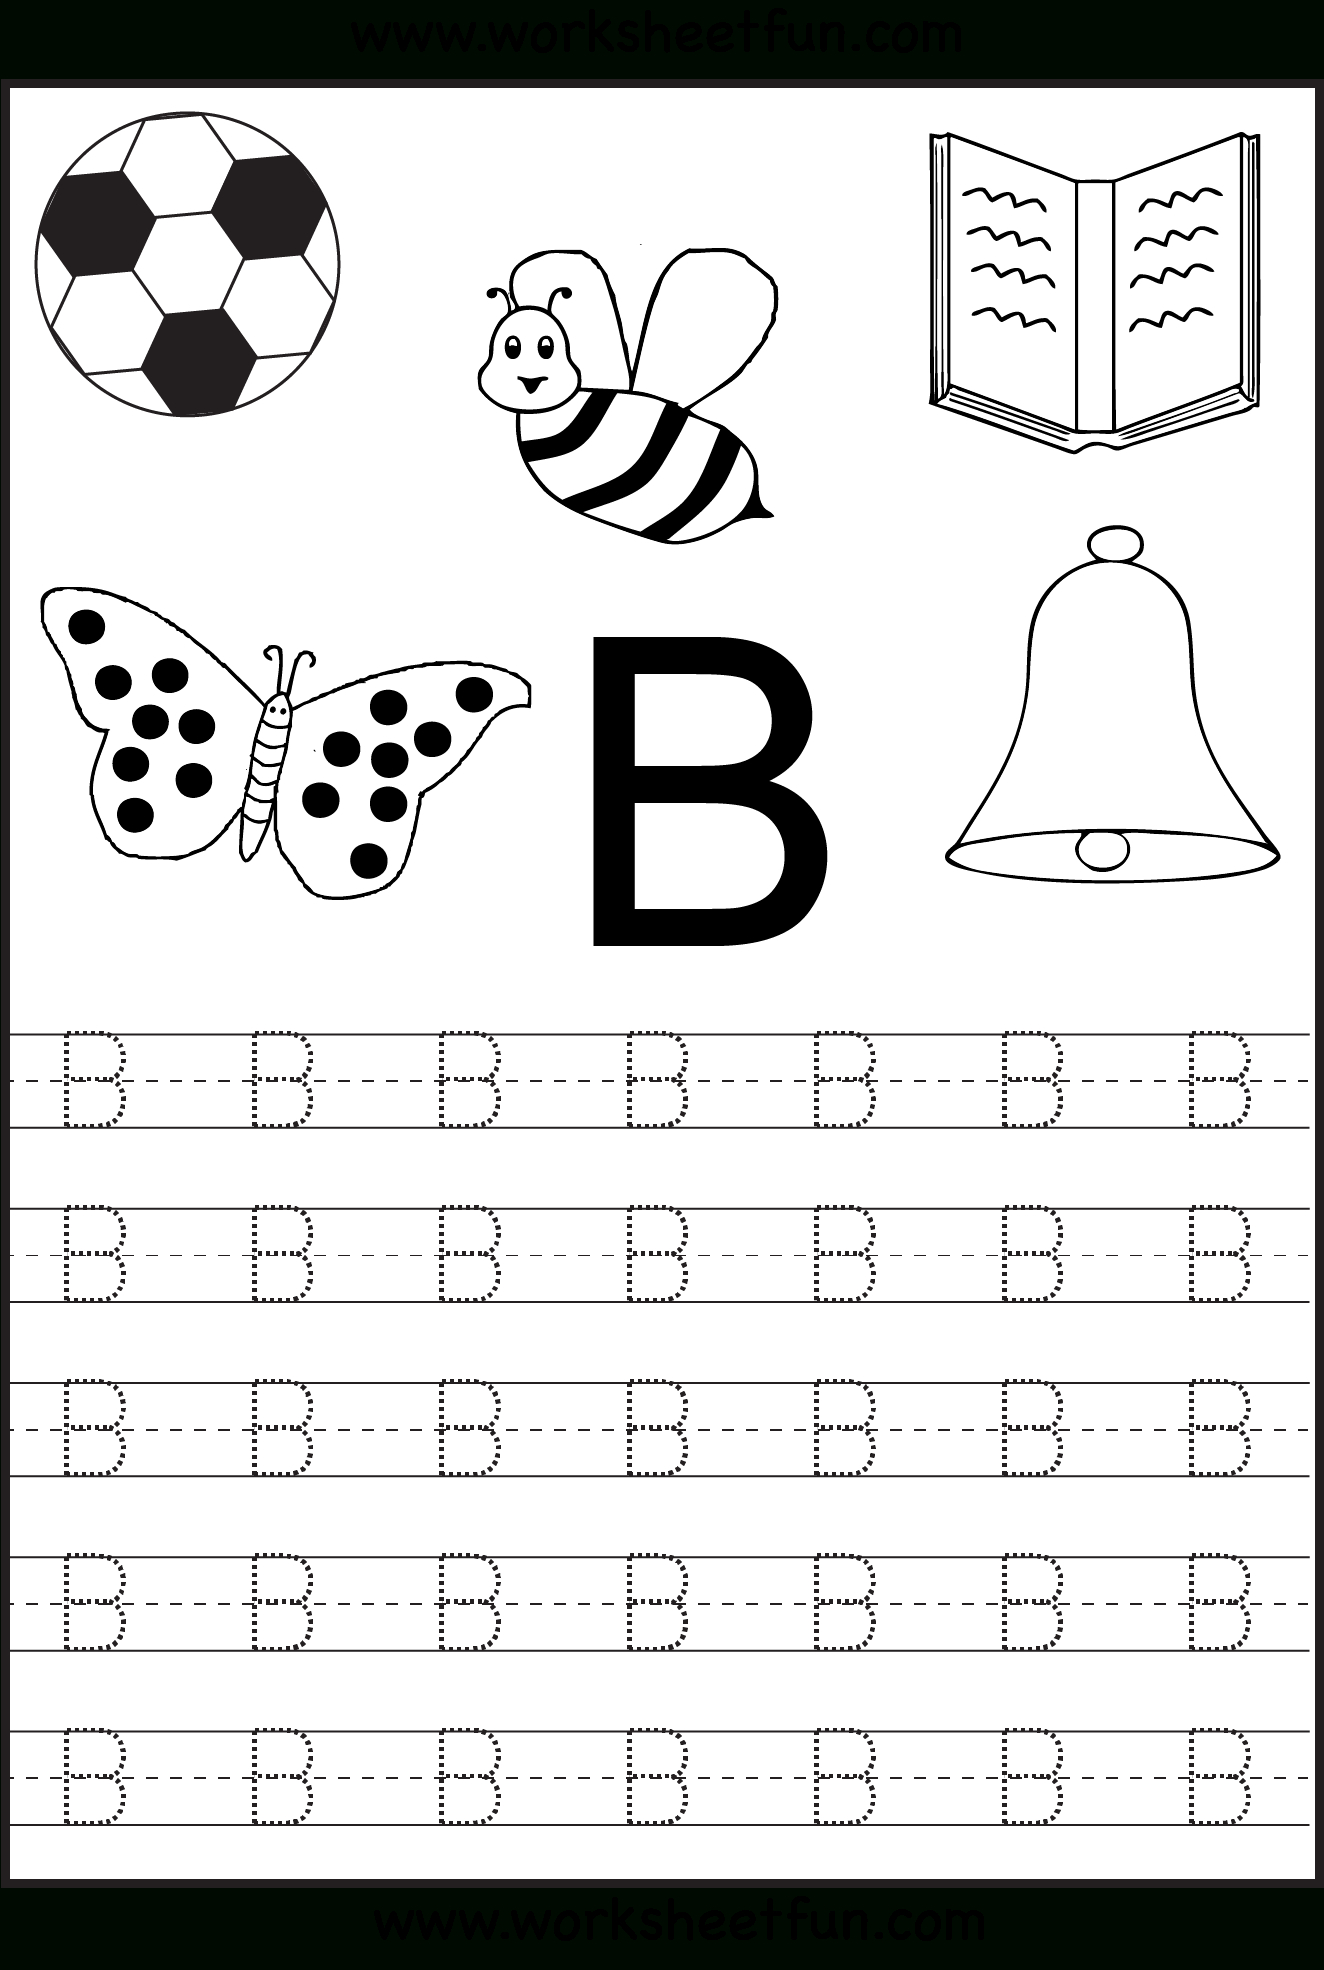 Free Printable Letter Tracing Worksheets For Kindergarten – 26 - Free Printable Alphabet Worksheets For Kindergarten